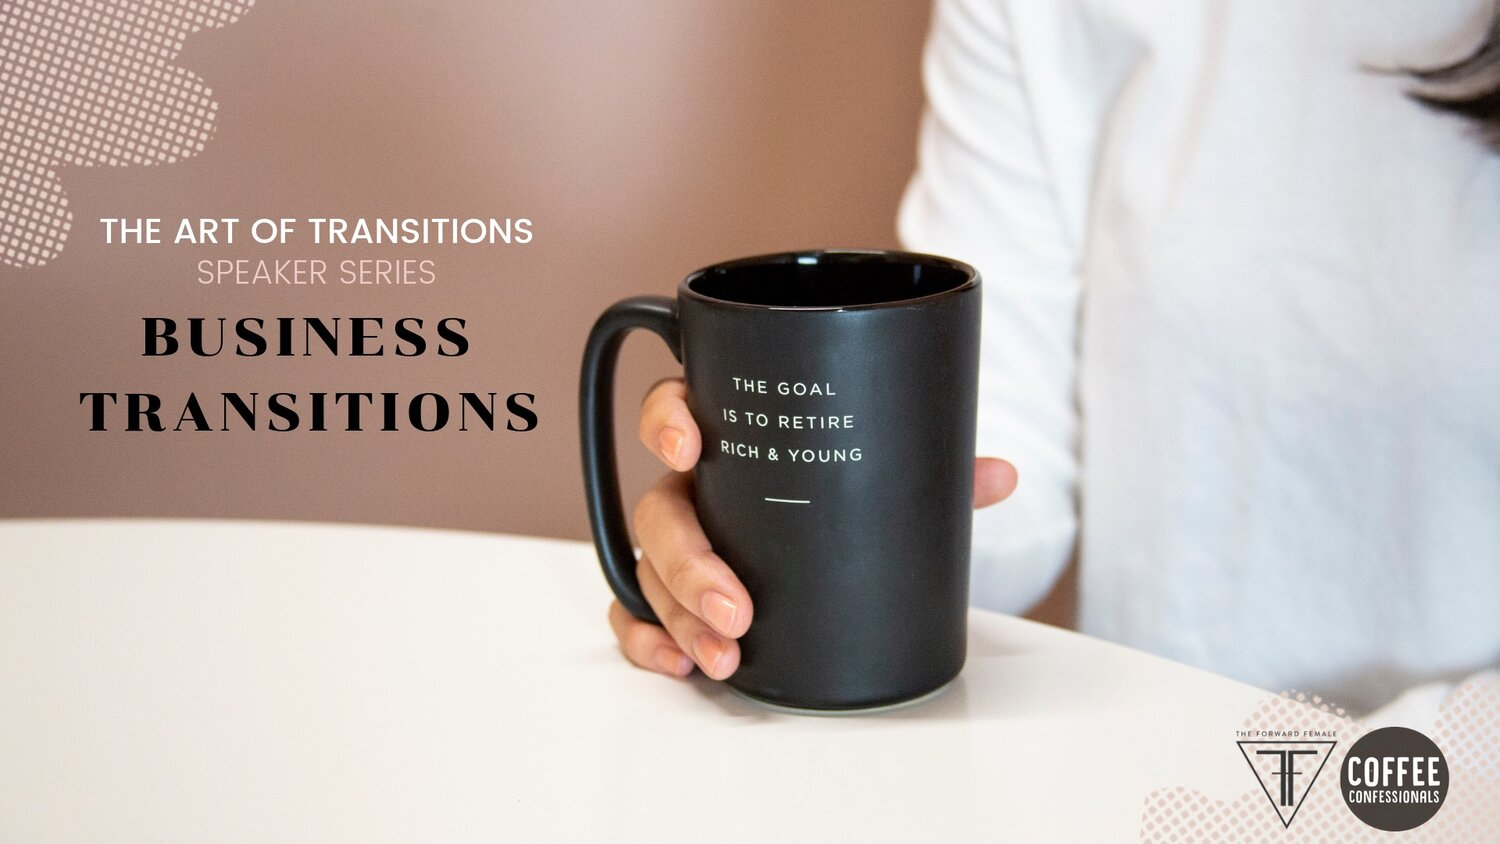 Coffee+Confessionals+Business+Transitions.JPG